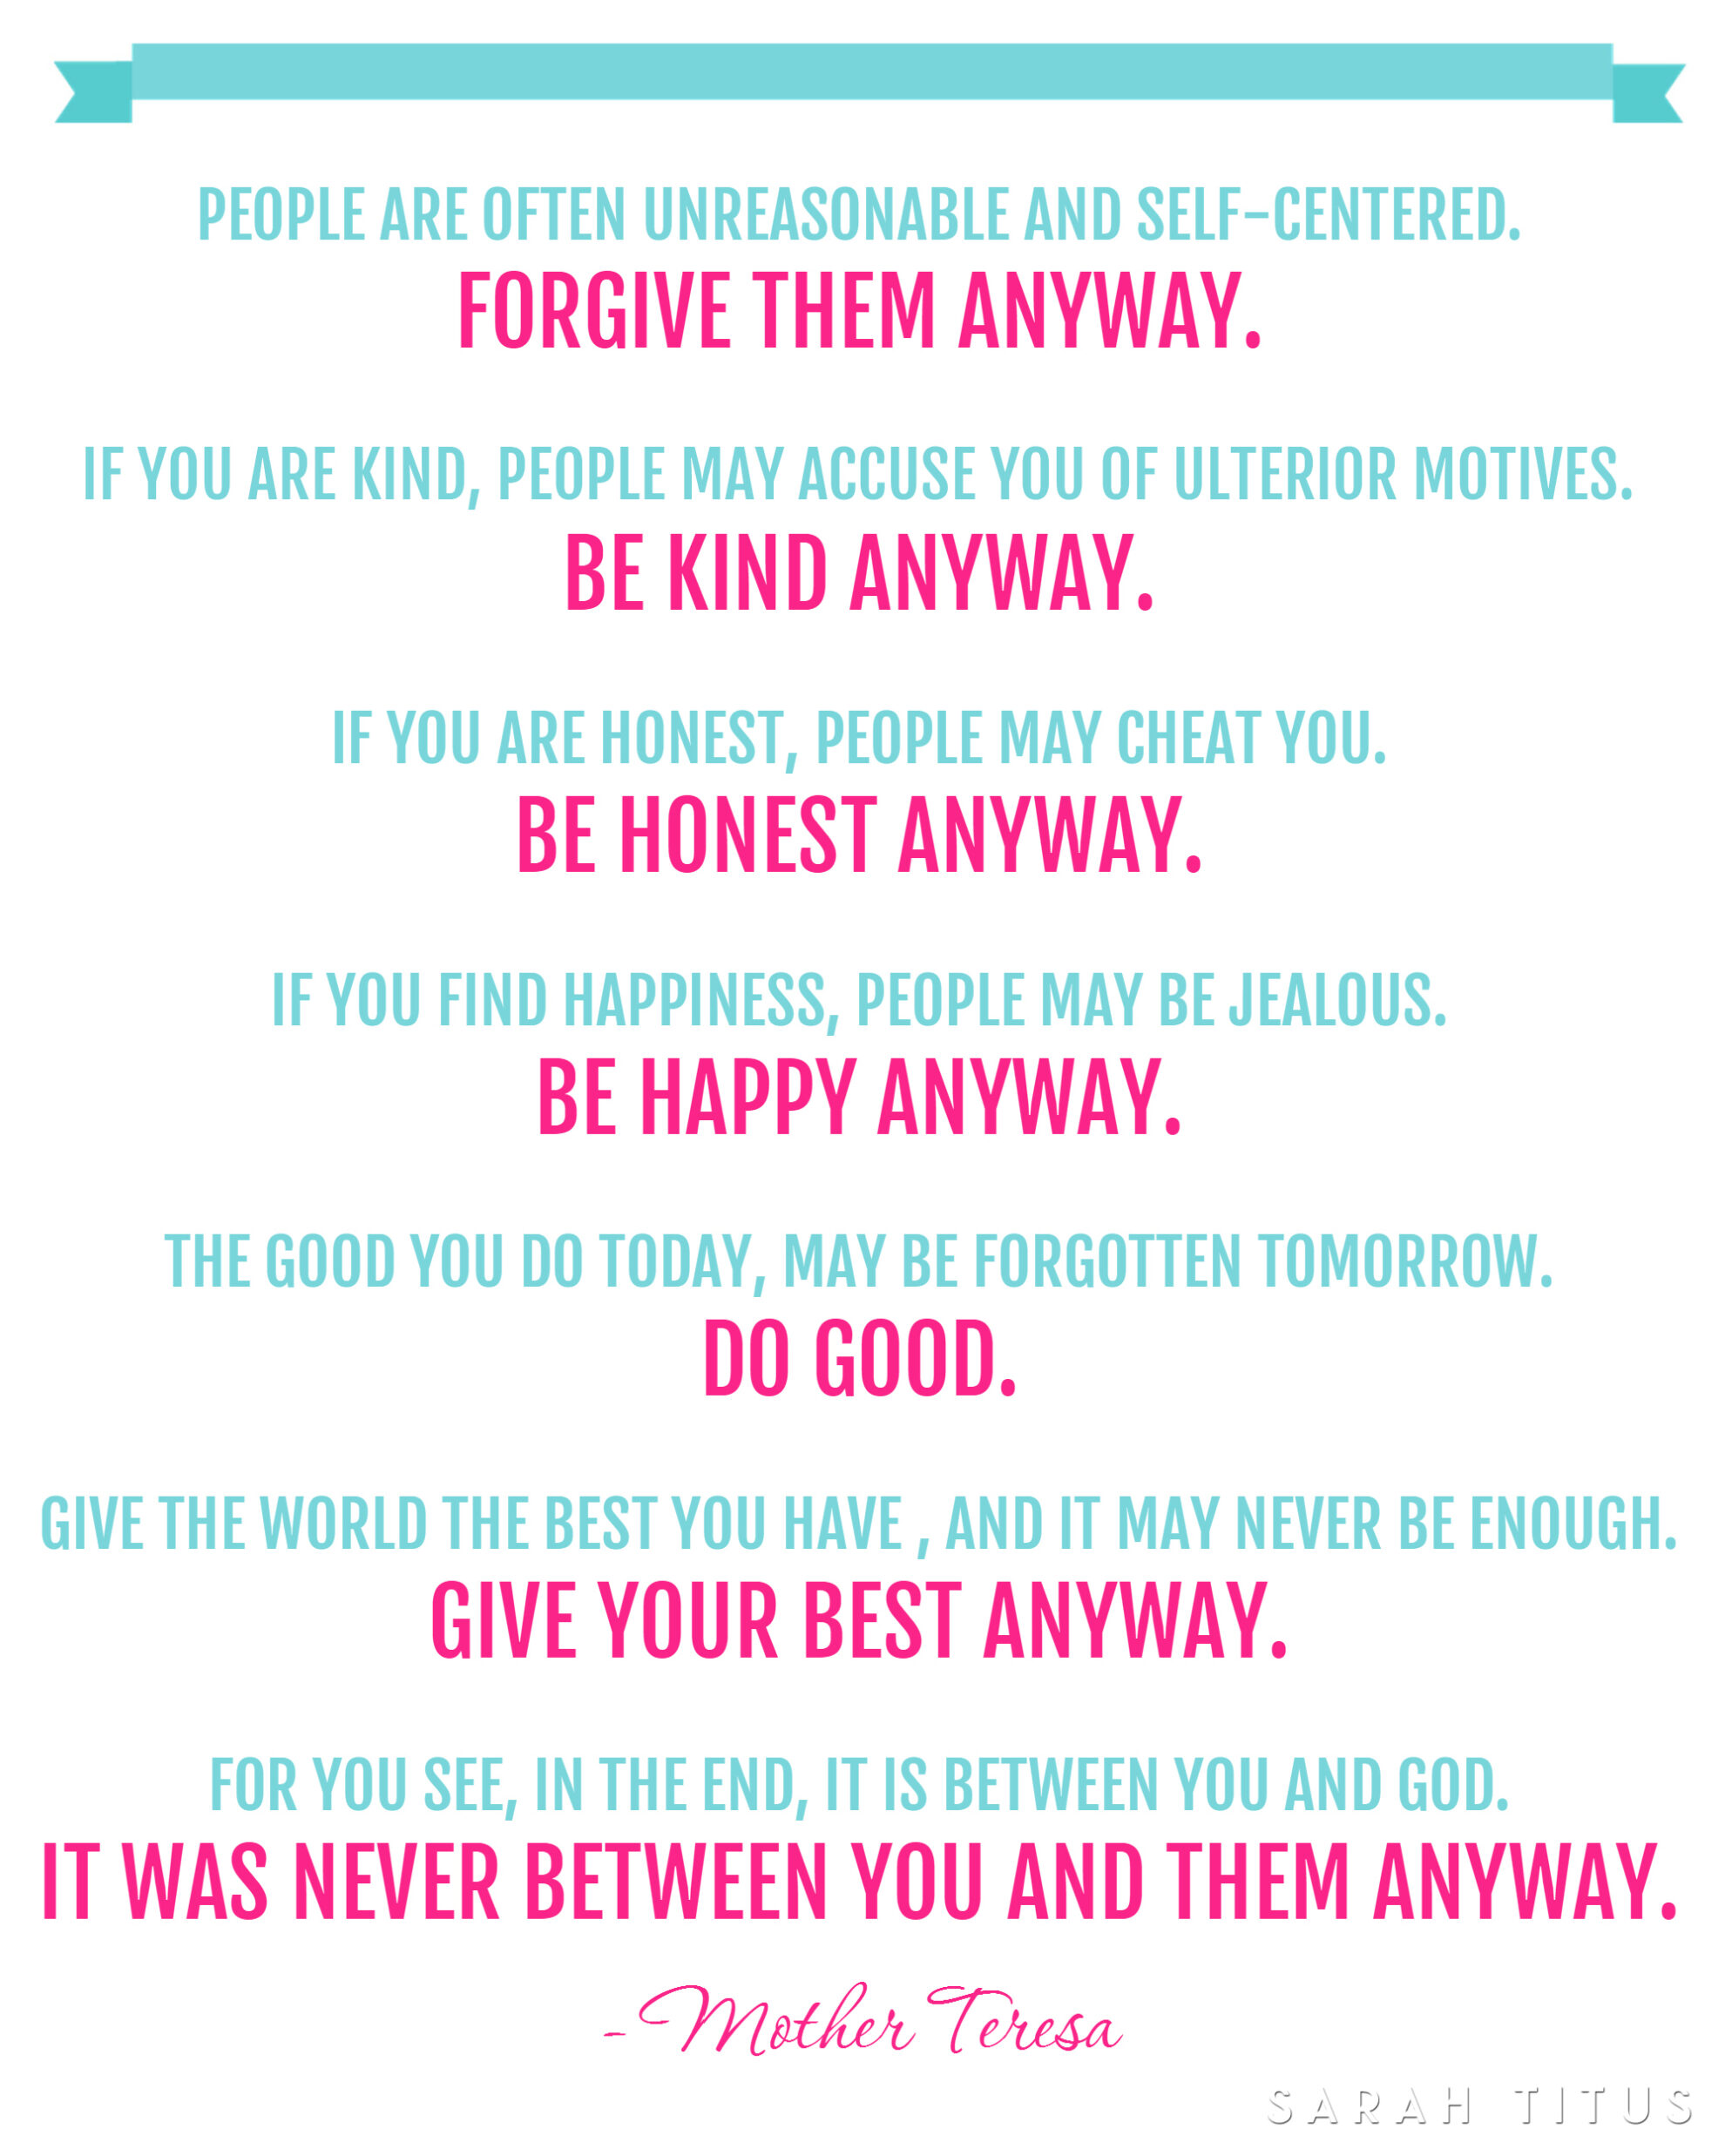 Mother Teresa Quotes Love Them Anyway Free Mother Teresa Quote Printable  Sarah Titus